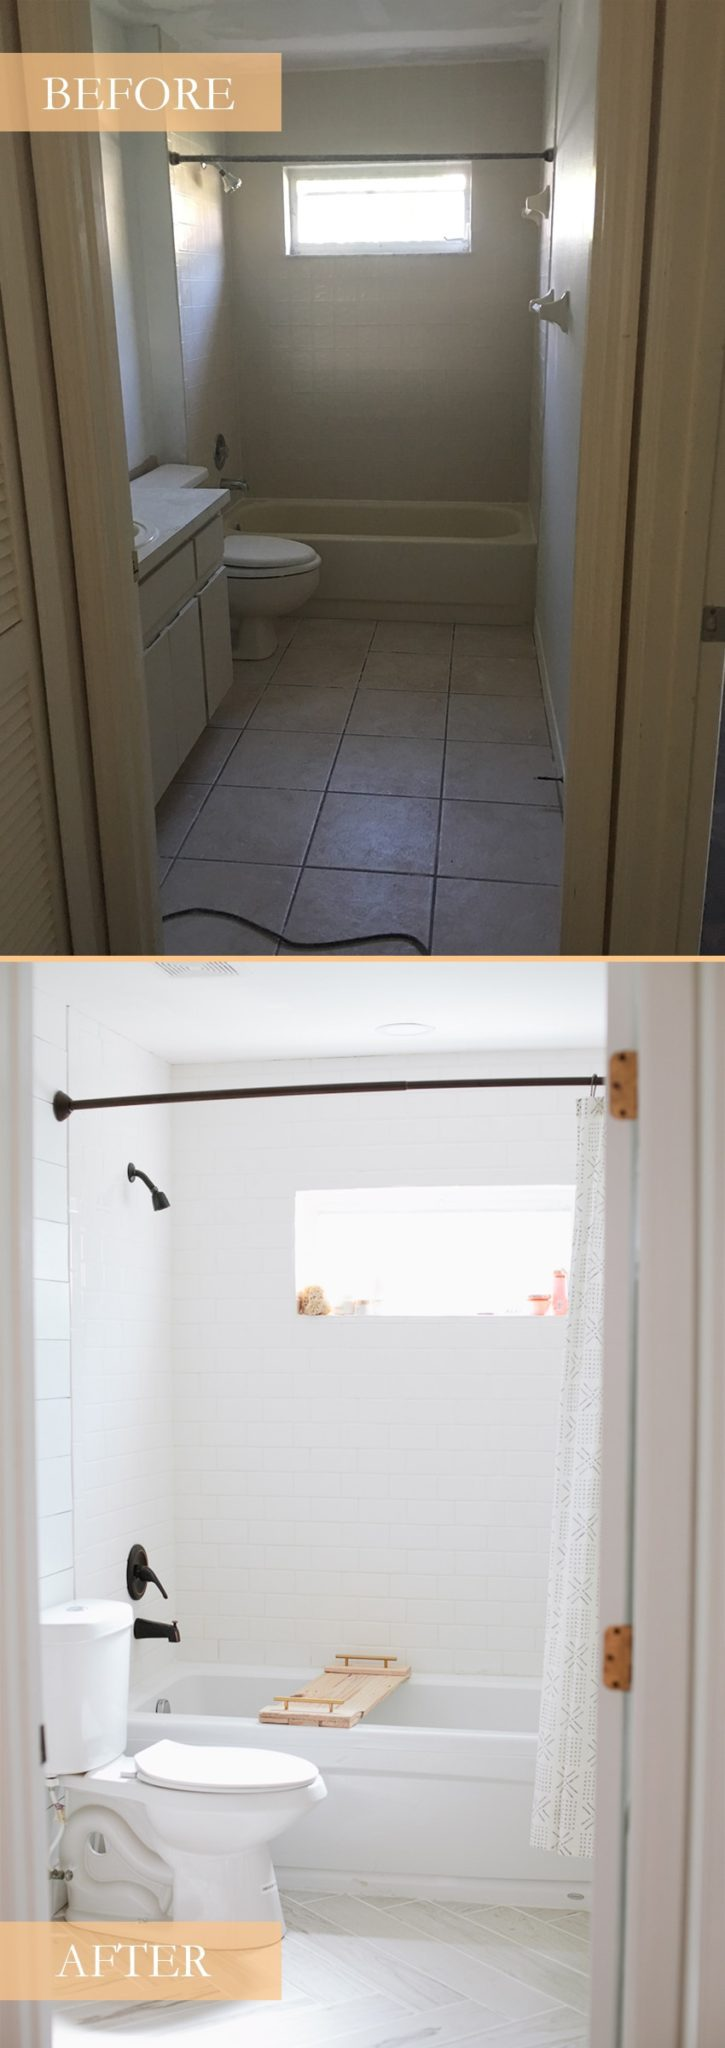 The before and after of a bright white bathroom remodel.